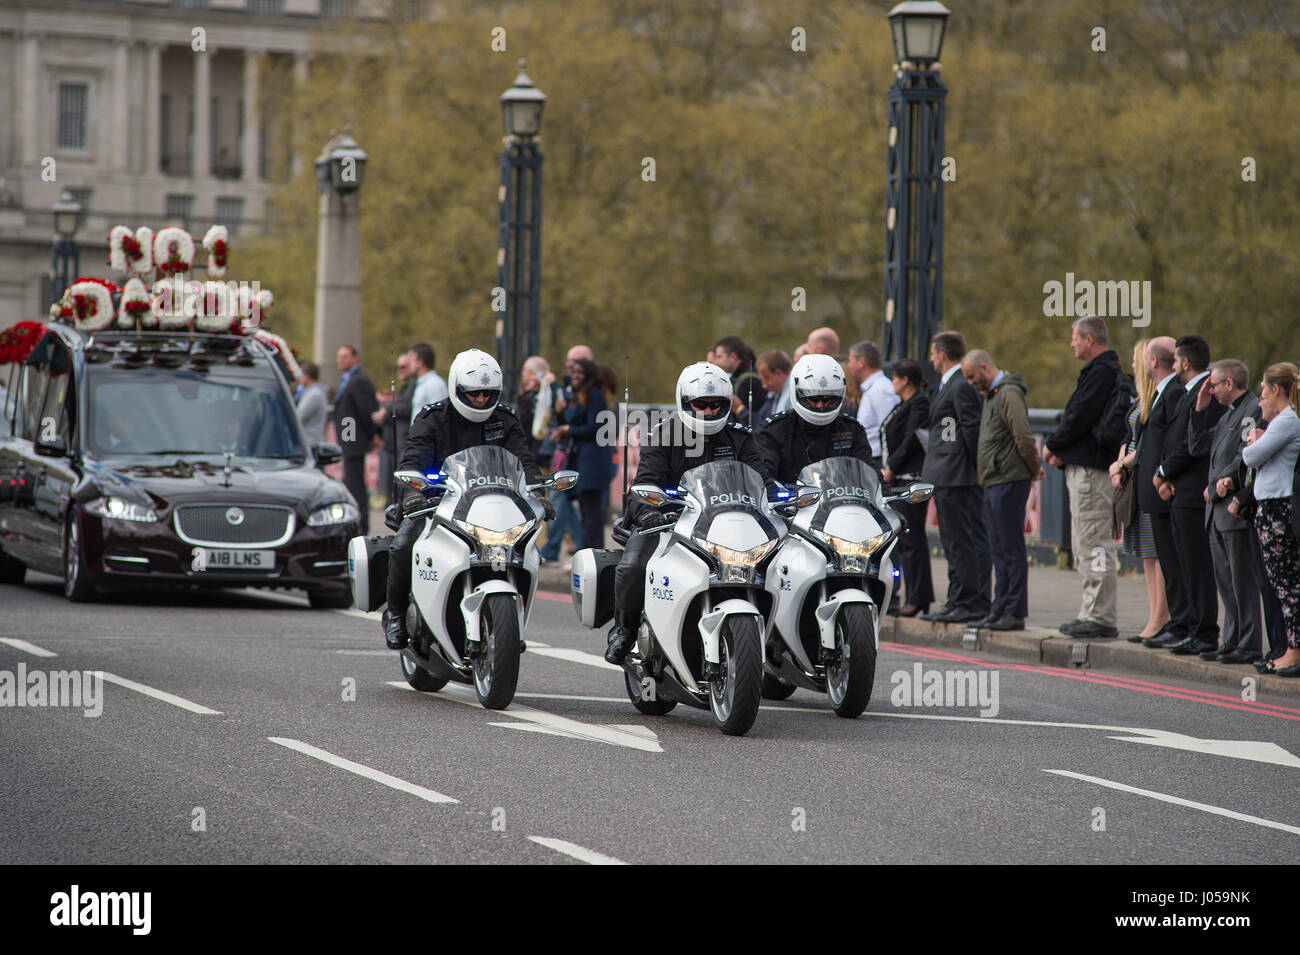 Lambeth Bridge, London, UK. 10th April 2017. The full force funeral of PC Keith Palmer, killed in the Westminster Stock Photo